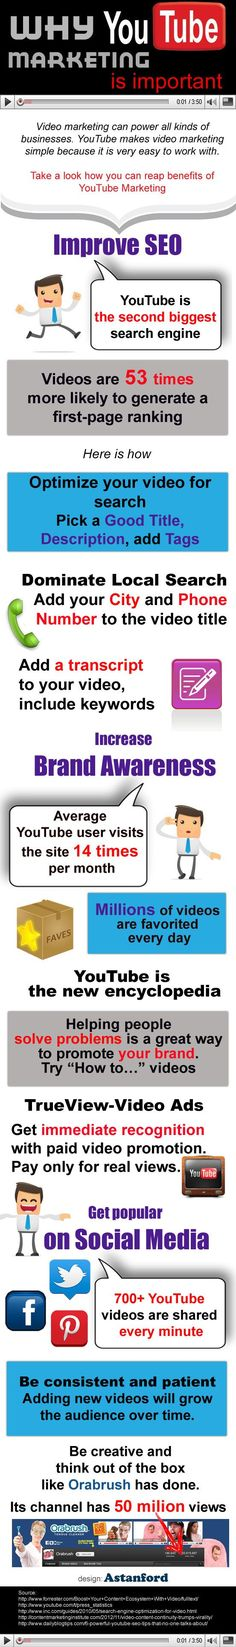 Why YouTube Marketing is Important! #marketing #youtube #videos http://hdstartup.com #hdstartup